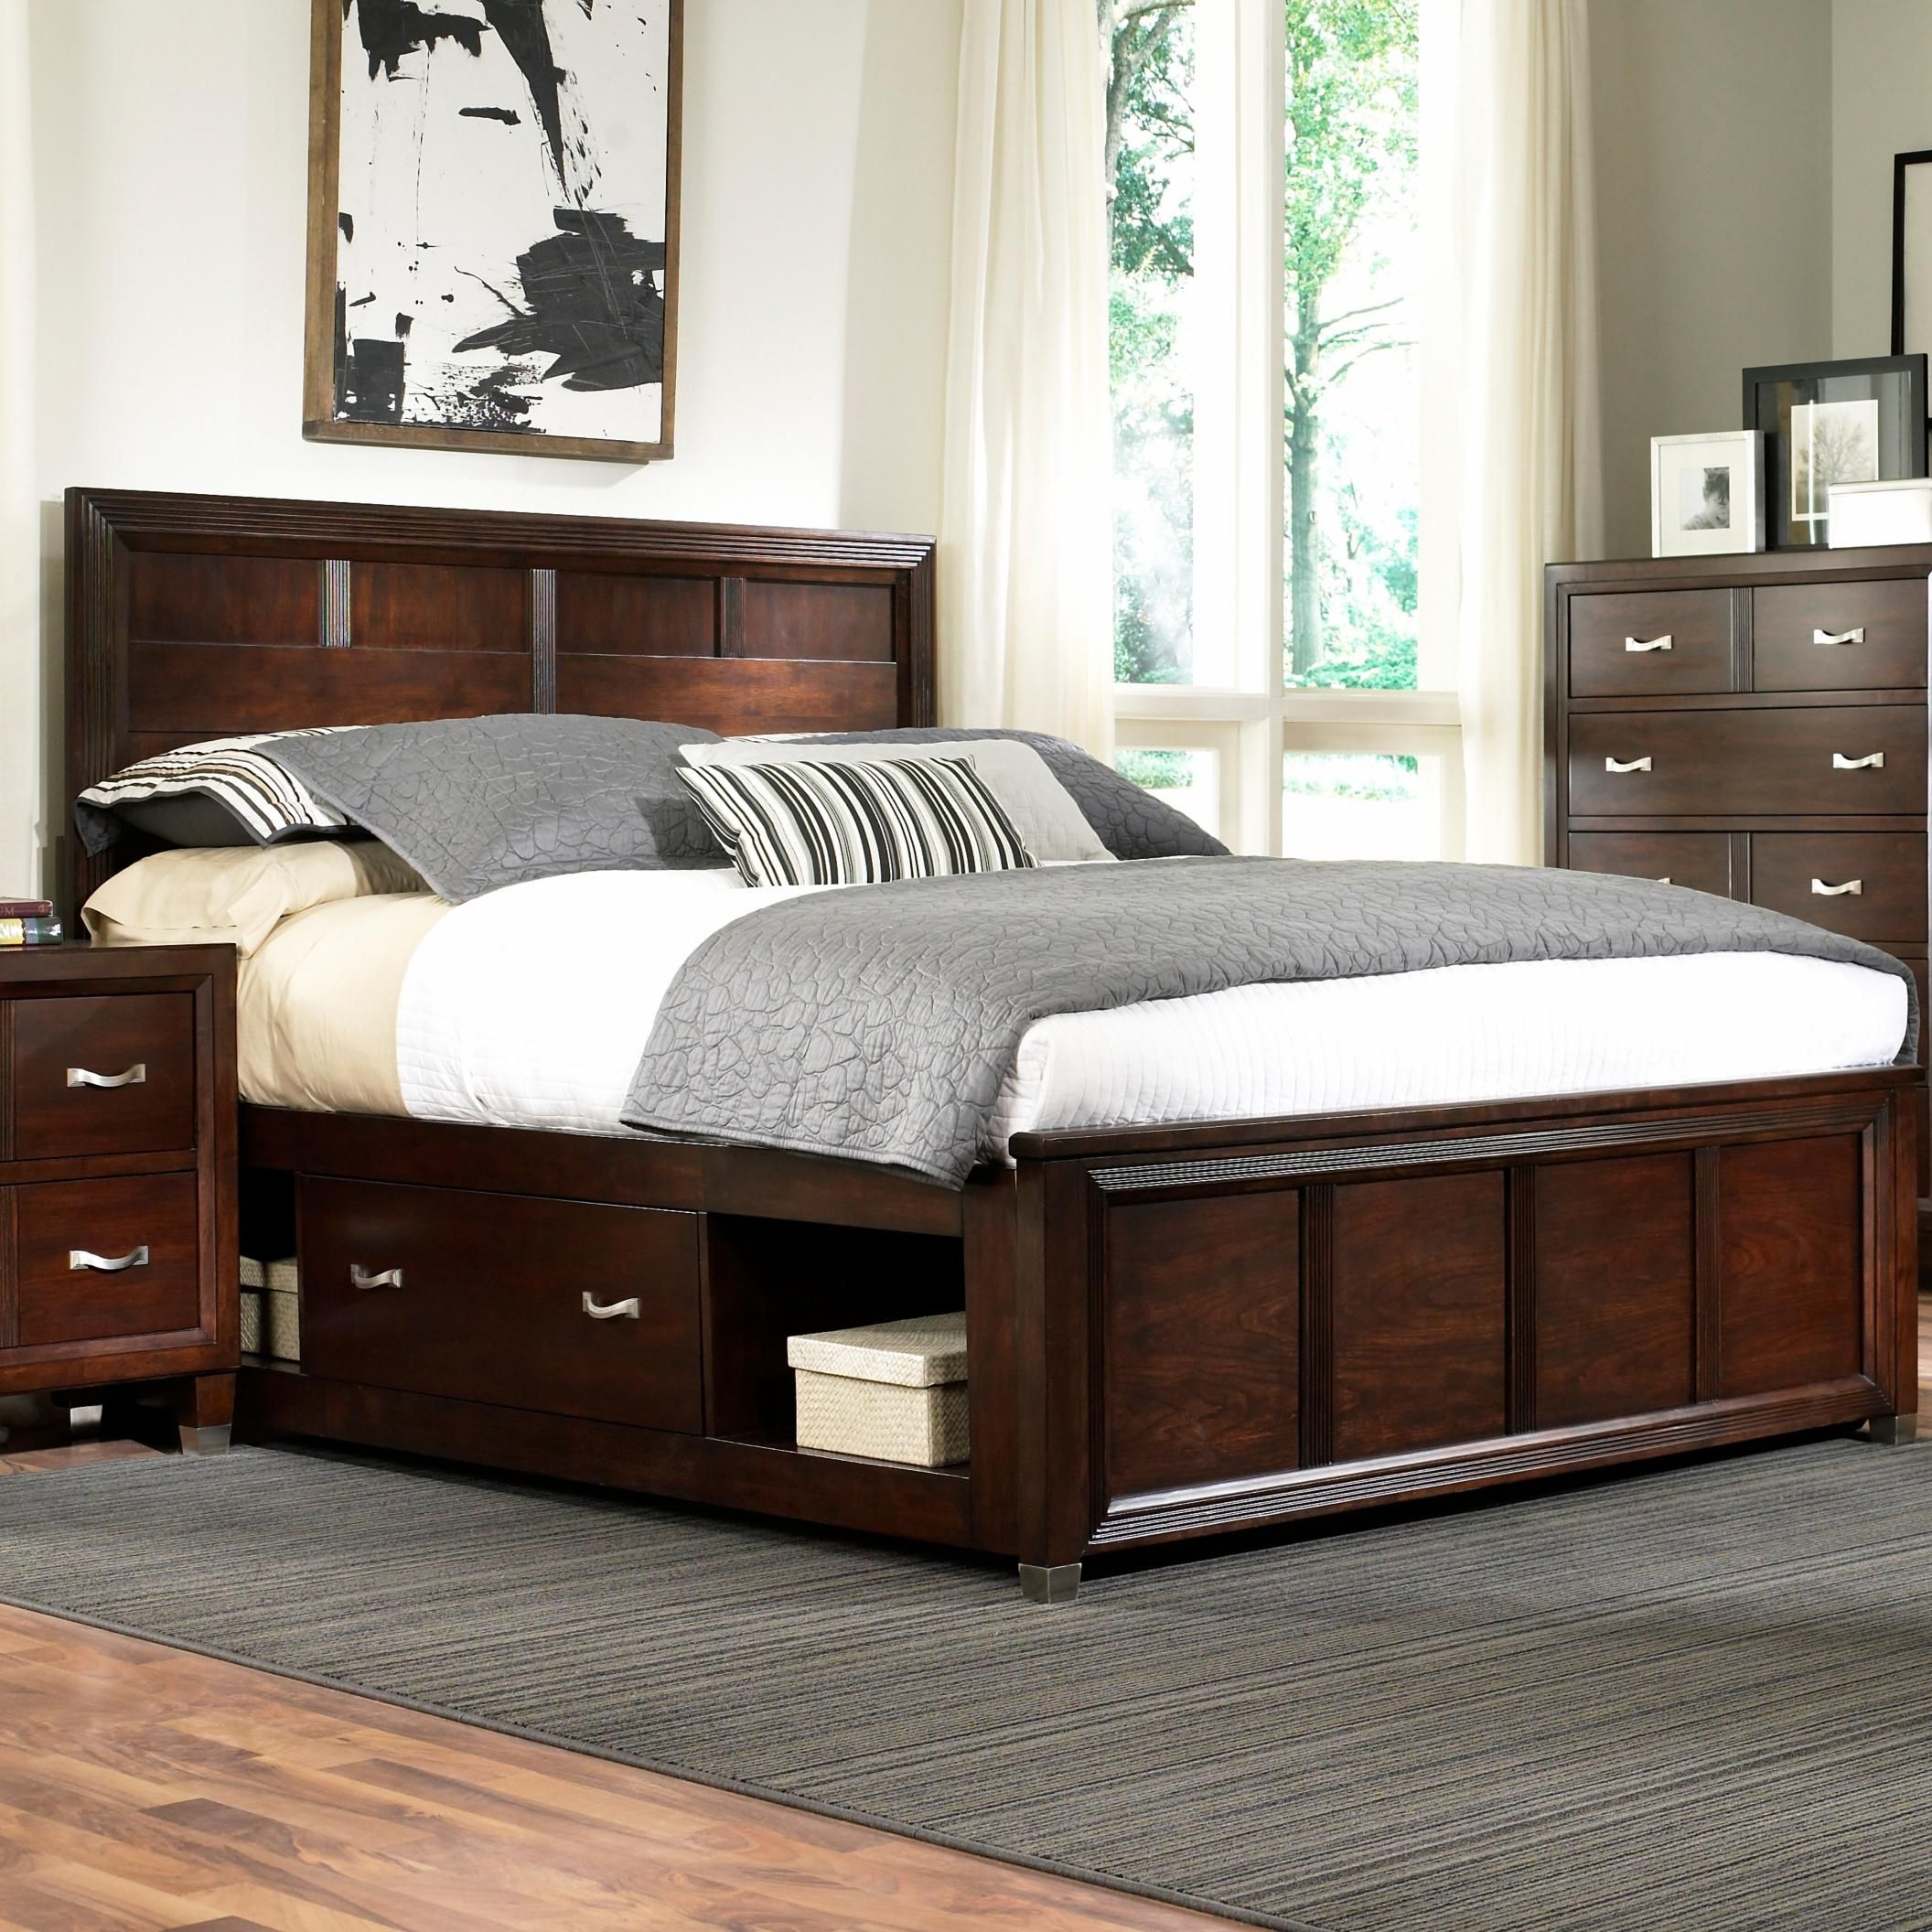 eastlake 2 queen captain 39 s bed with single storage side rail by broyhill furniture becker. Black Bedroom Furniture Sets. Home Design Ideas